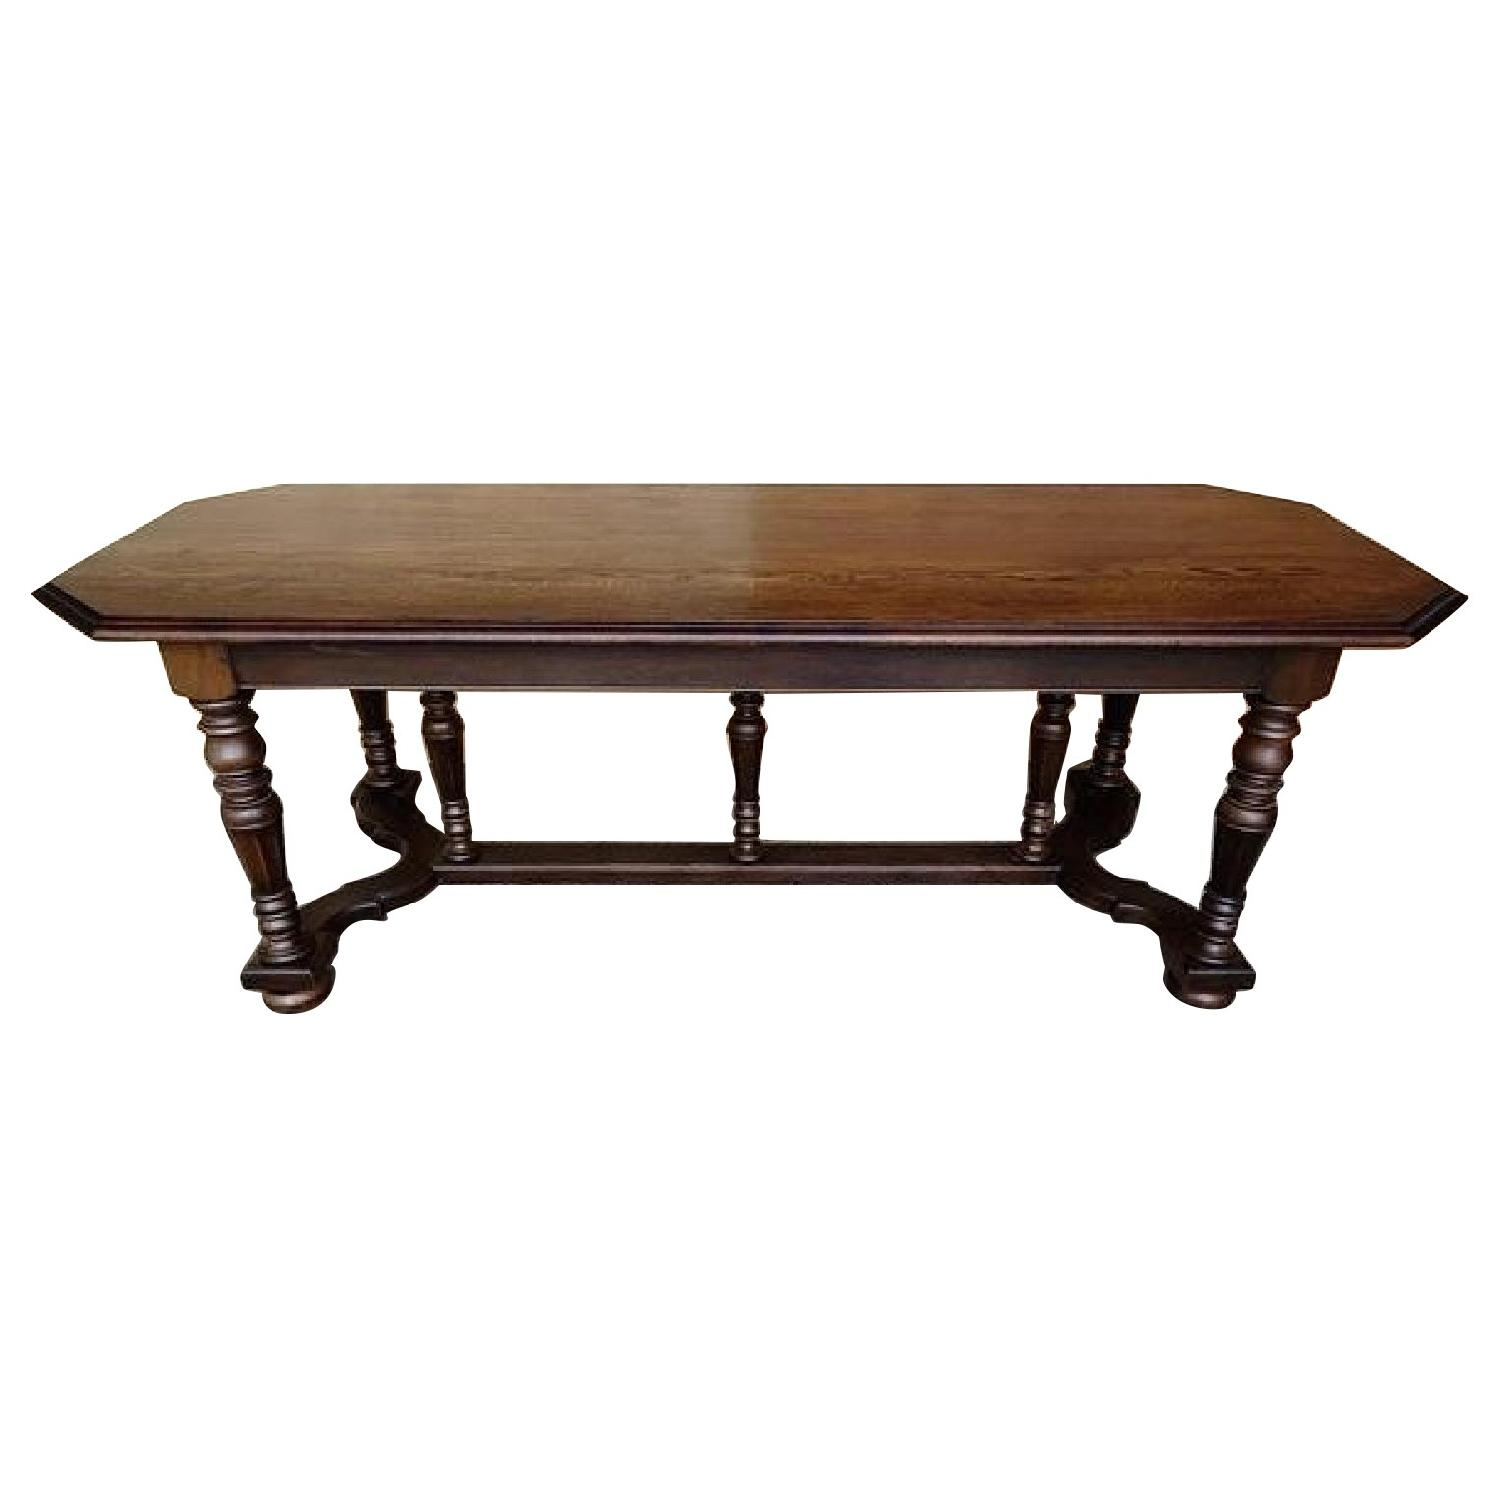 Vintage French Jacobean Revival Style Dining Table